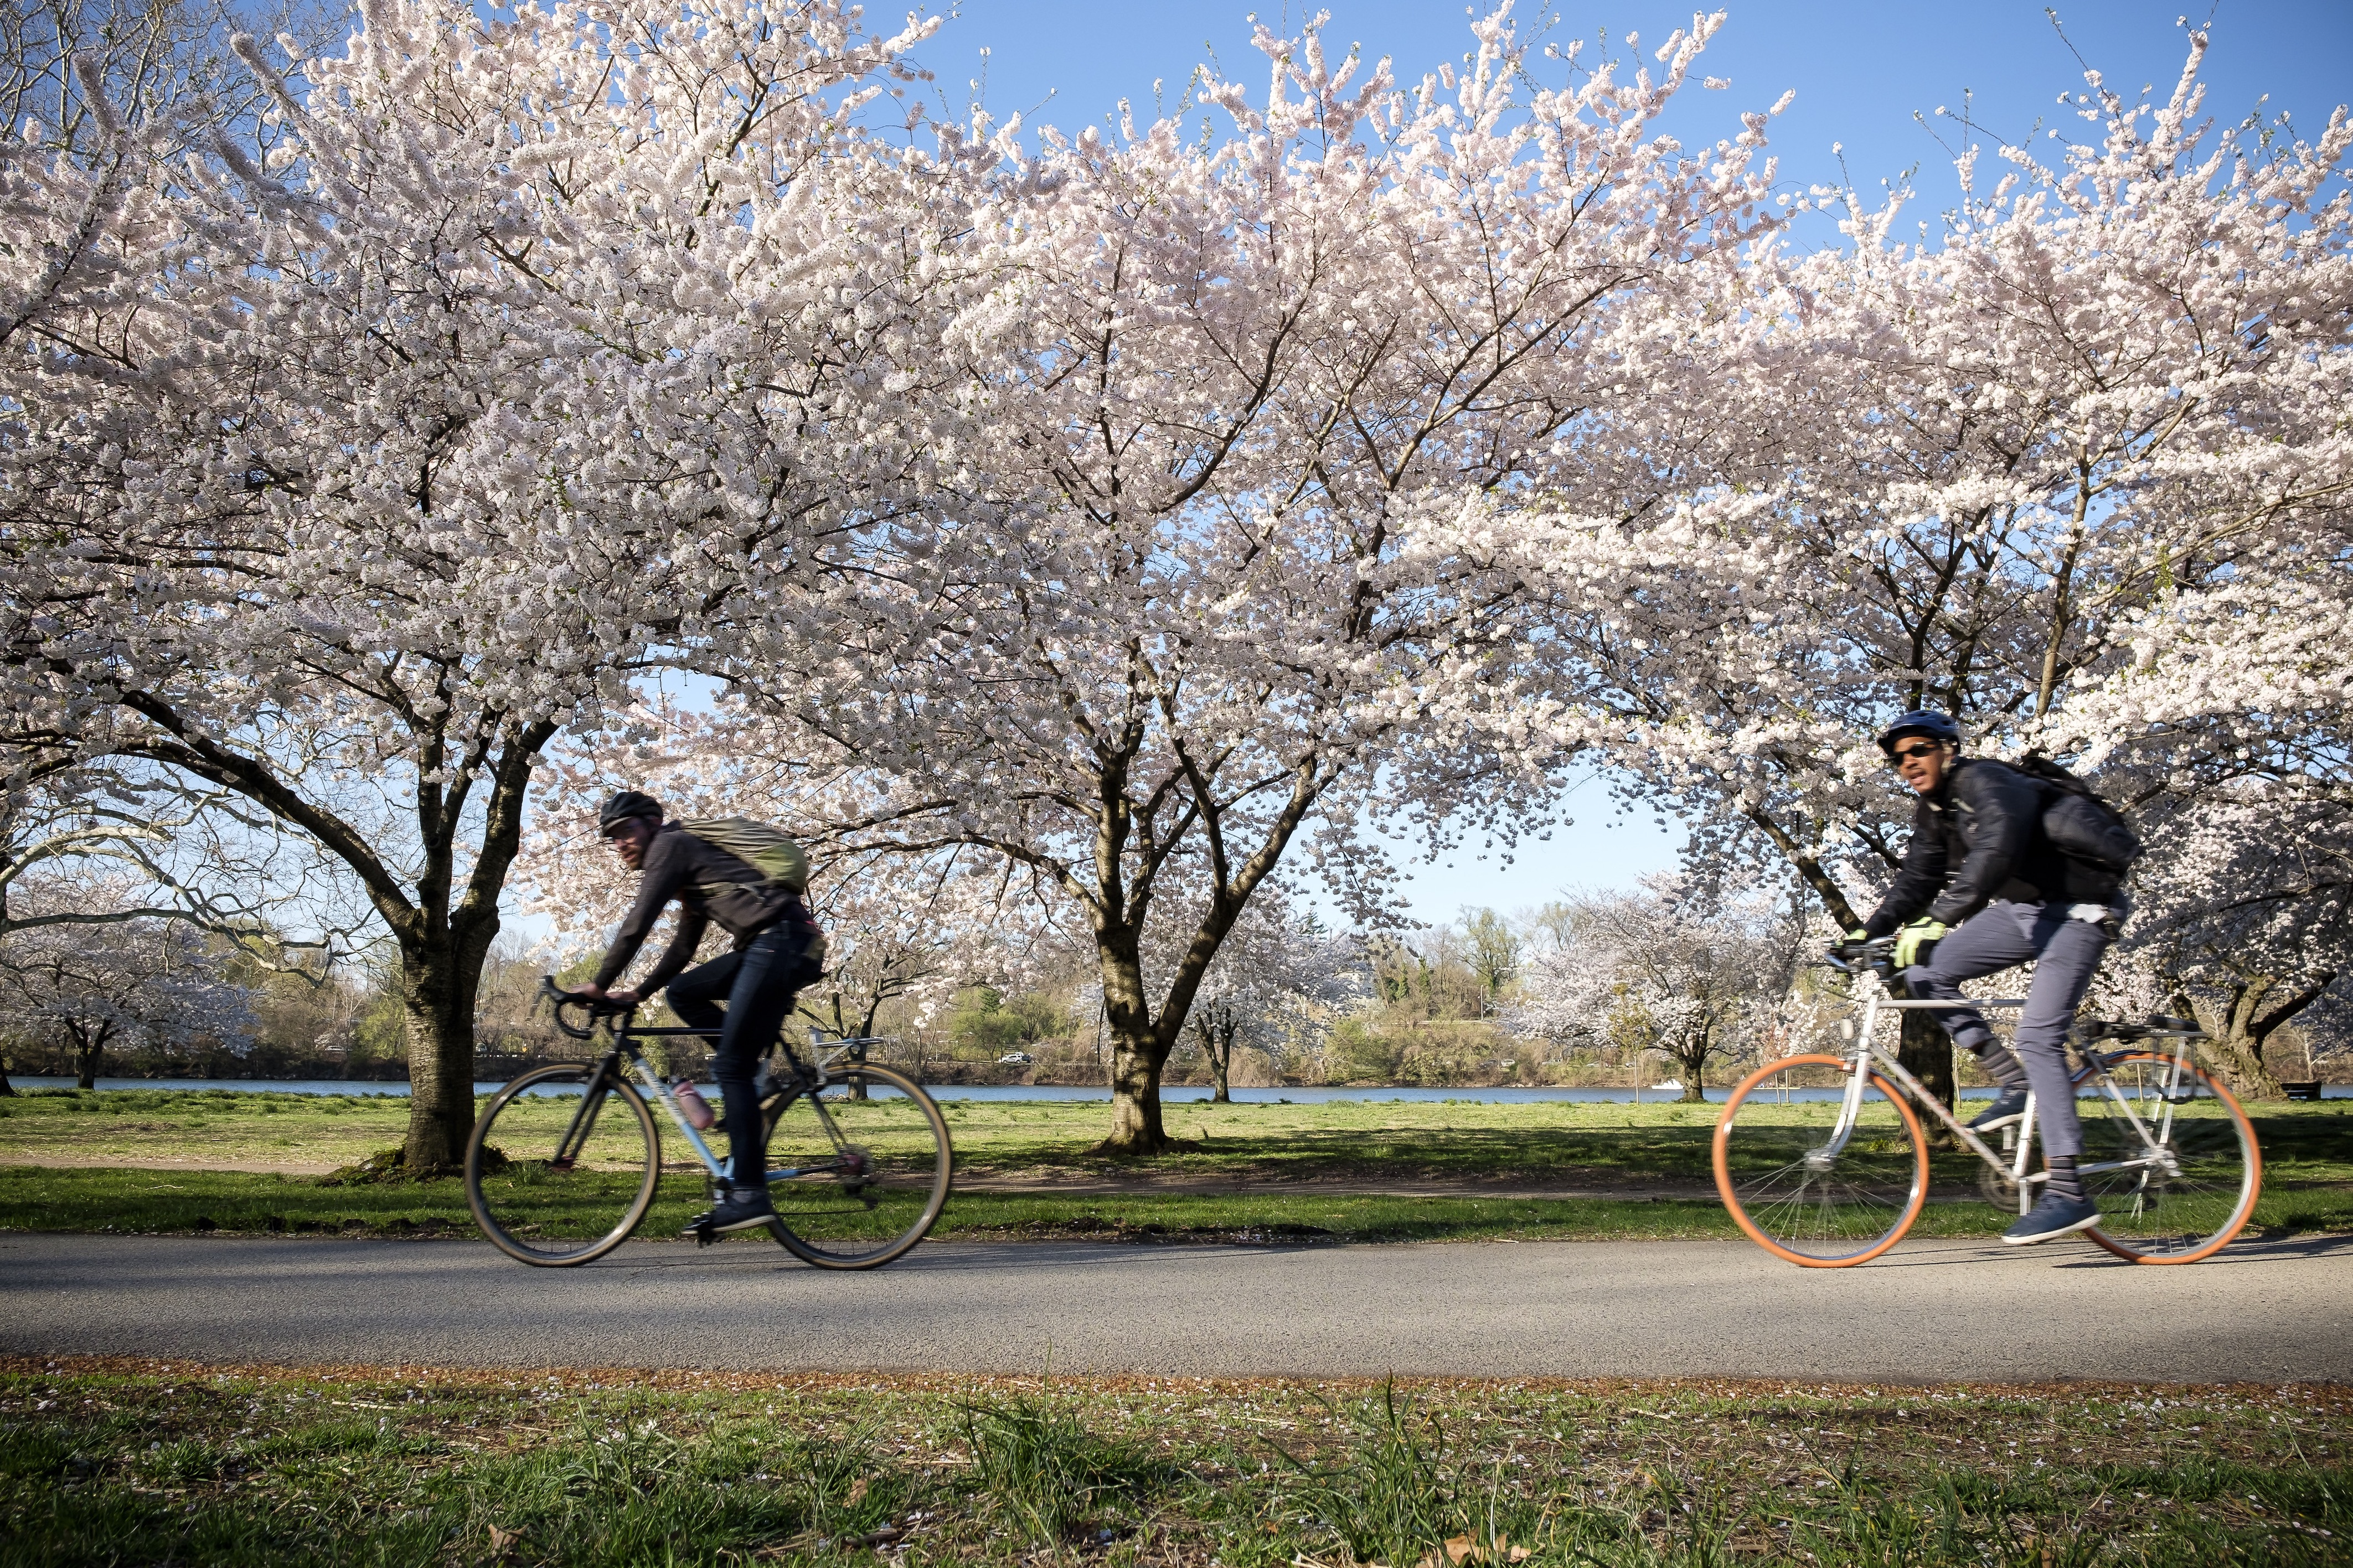 Cyclists ride under the cherry trees along the Schuylkill River Trail